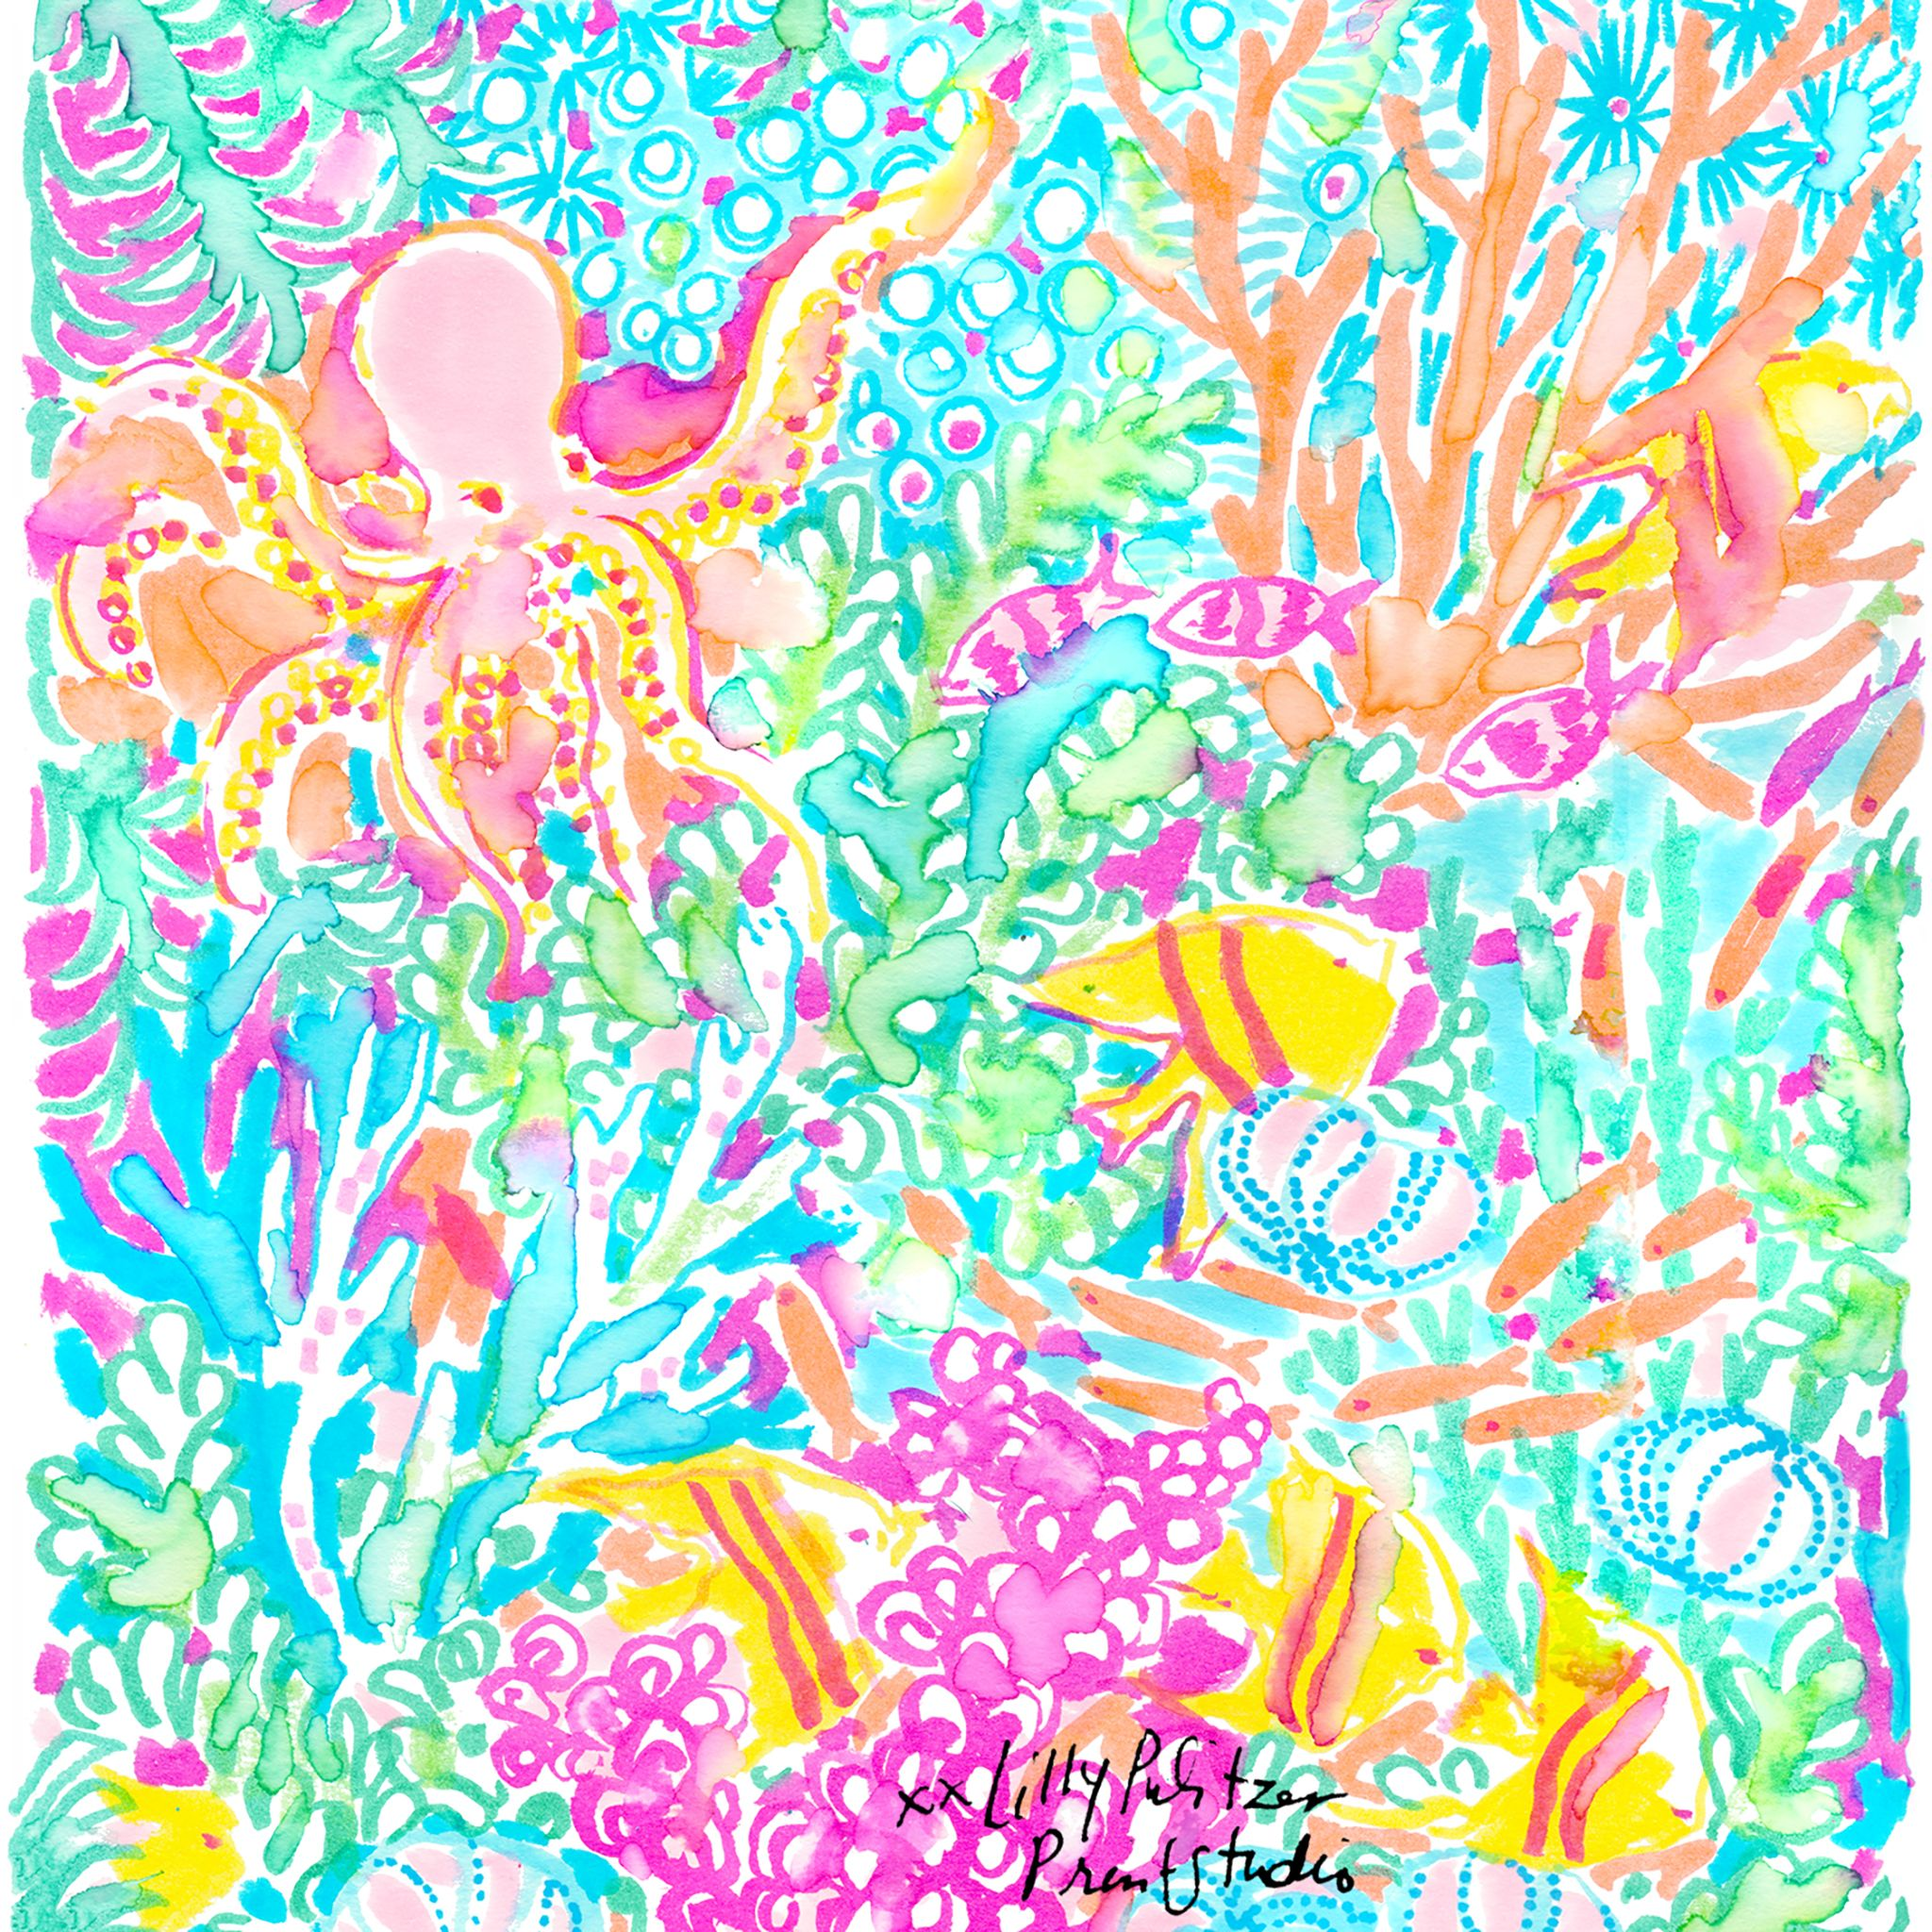 Fishing For Something Lilly 5x5 Lilly Pulitzer Prints